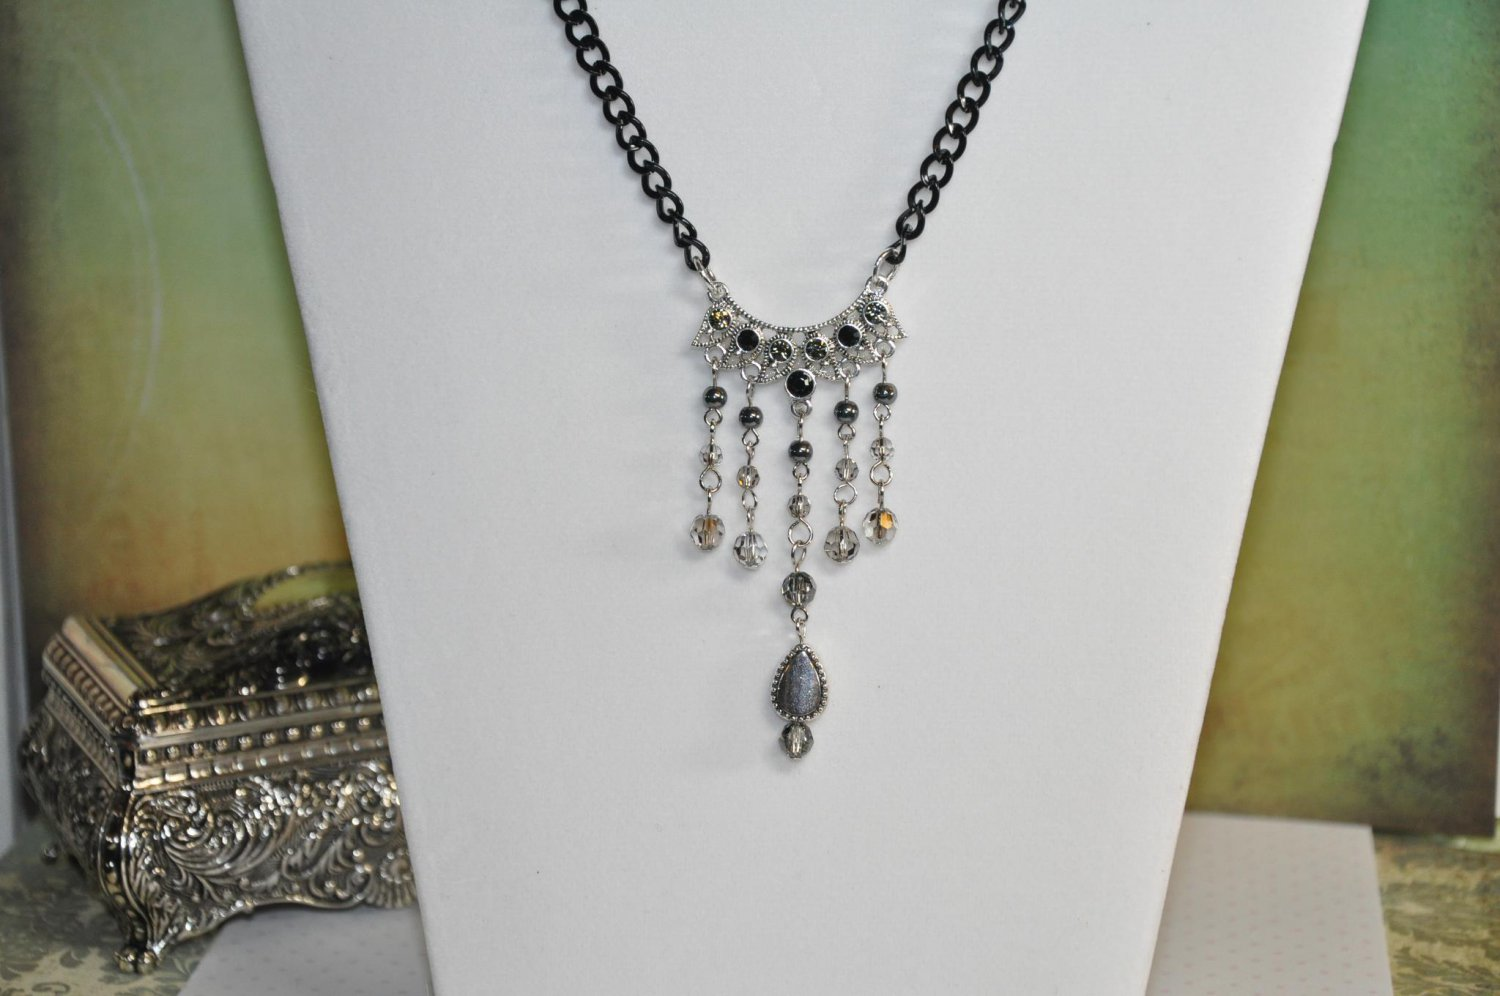 Black Chain Necklace with Swarovski Crystal Pendant